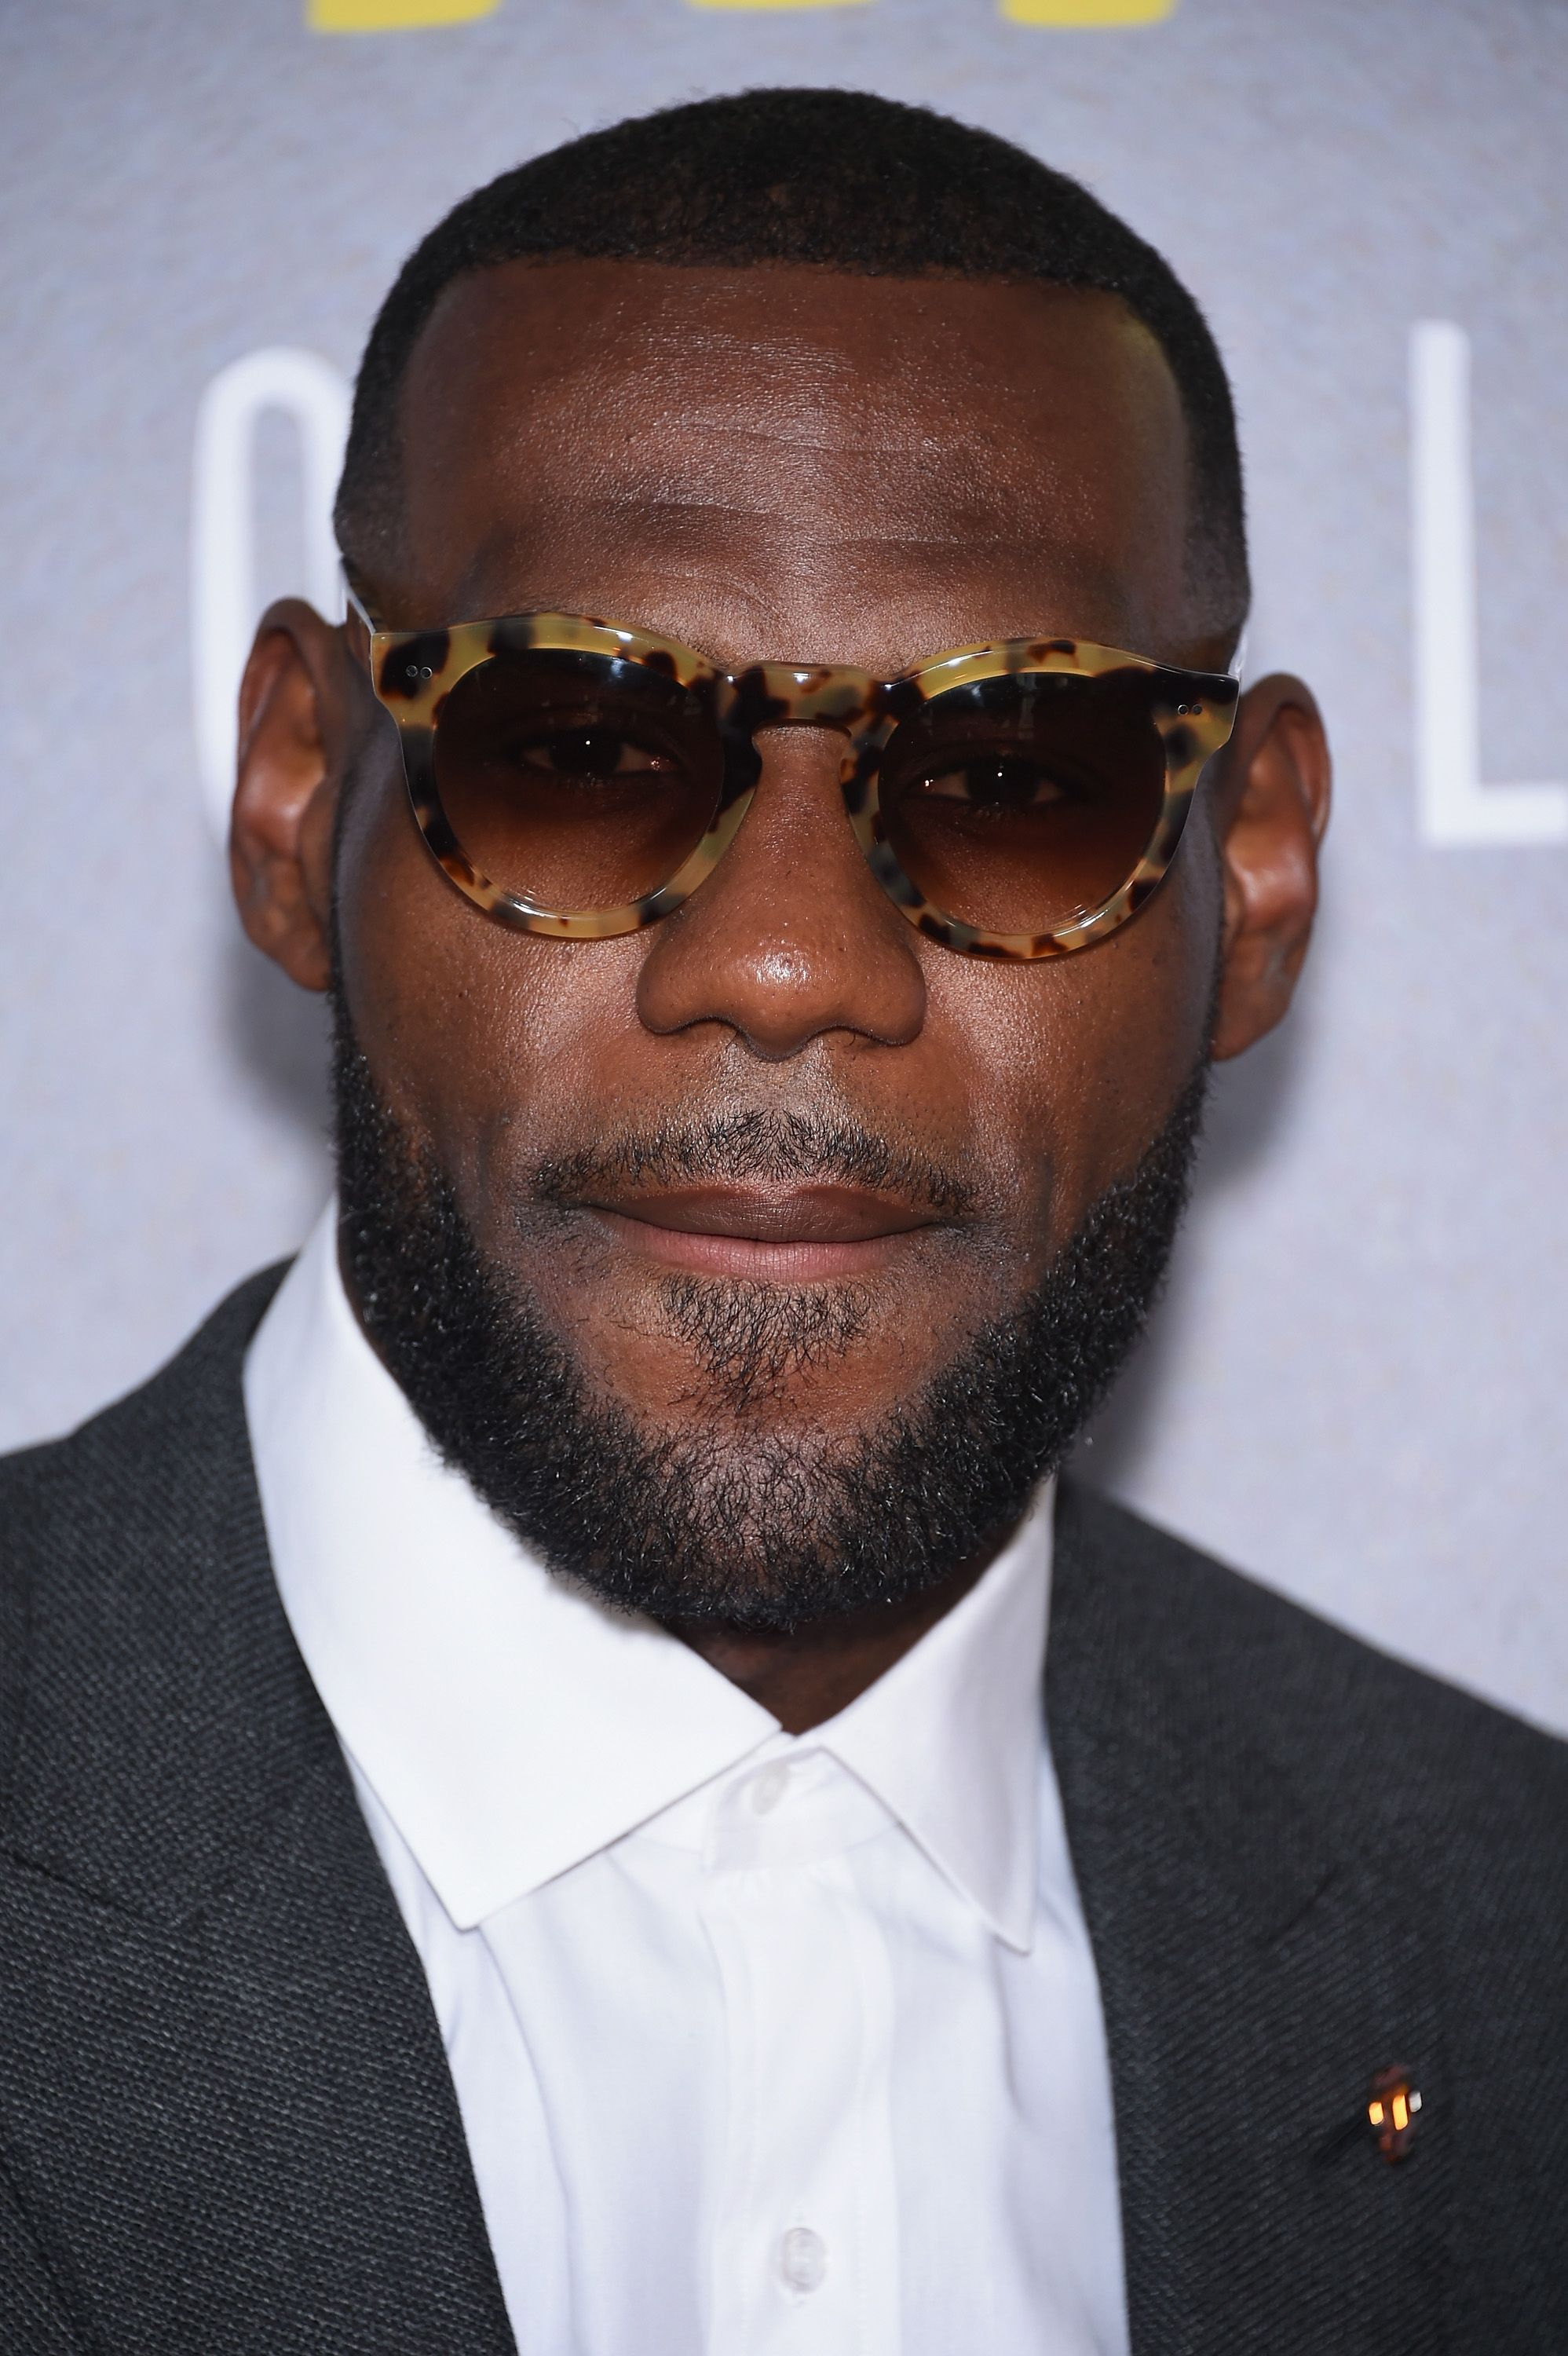 Lebron James Opens Ips Public School For At Risk Children In Akron